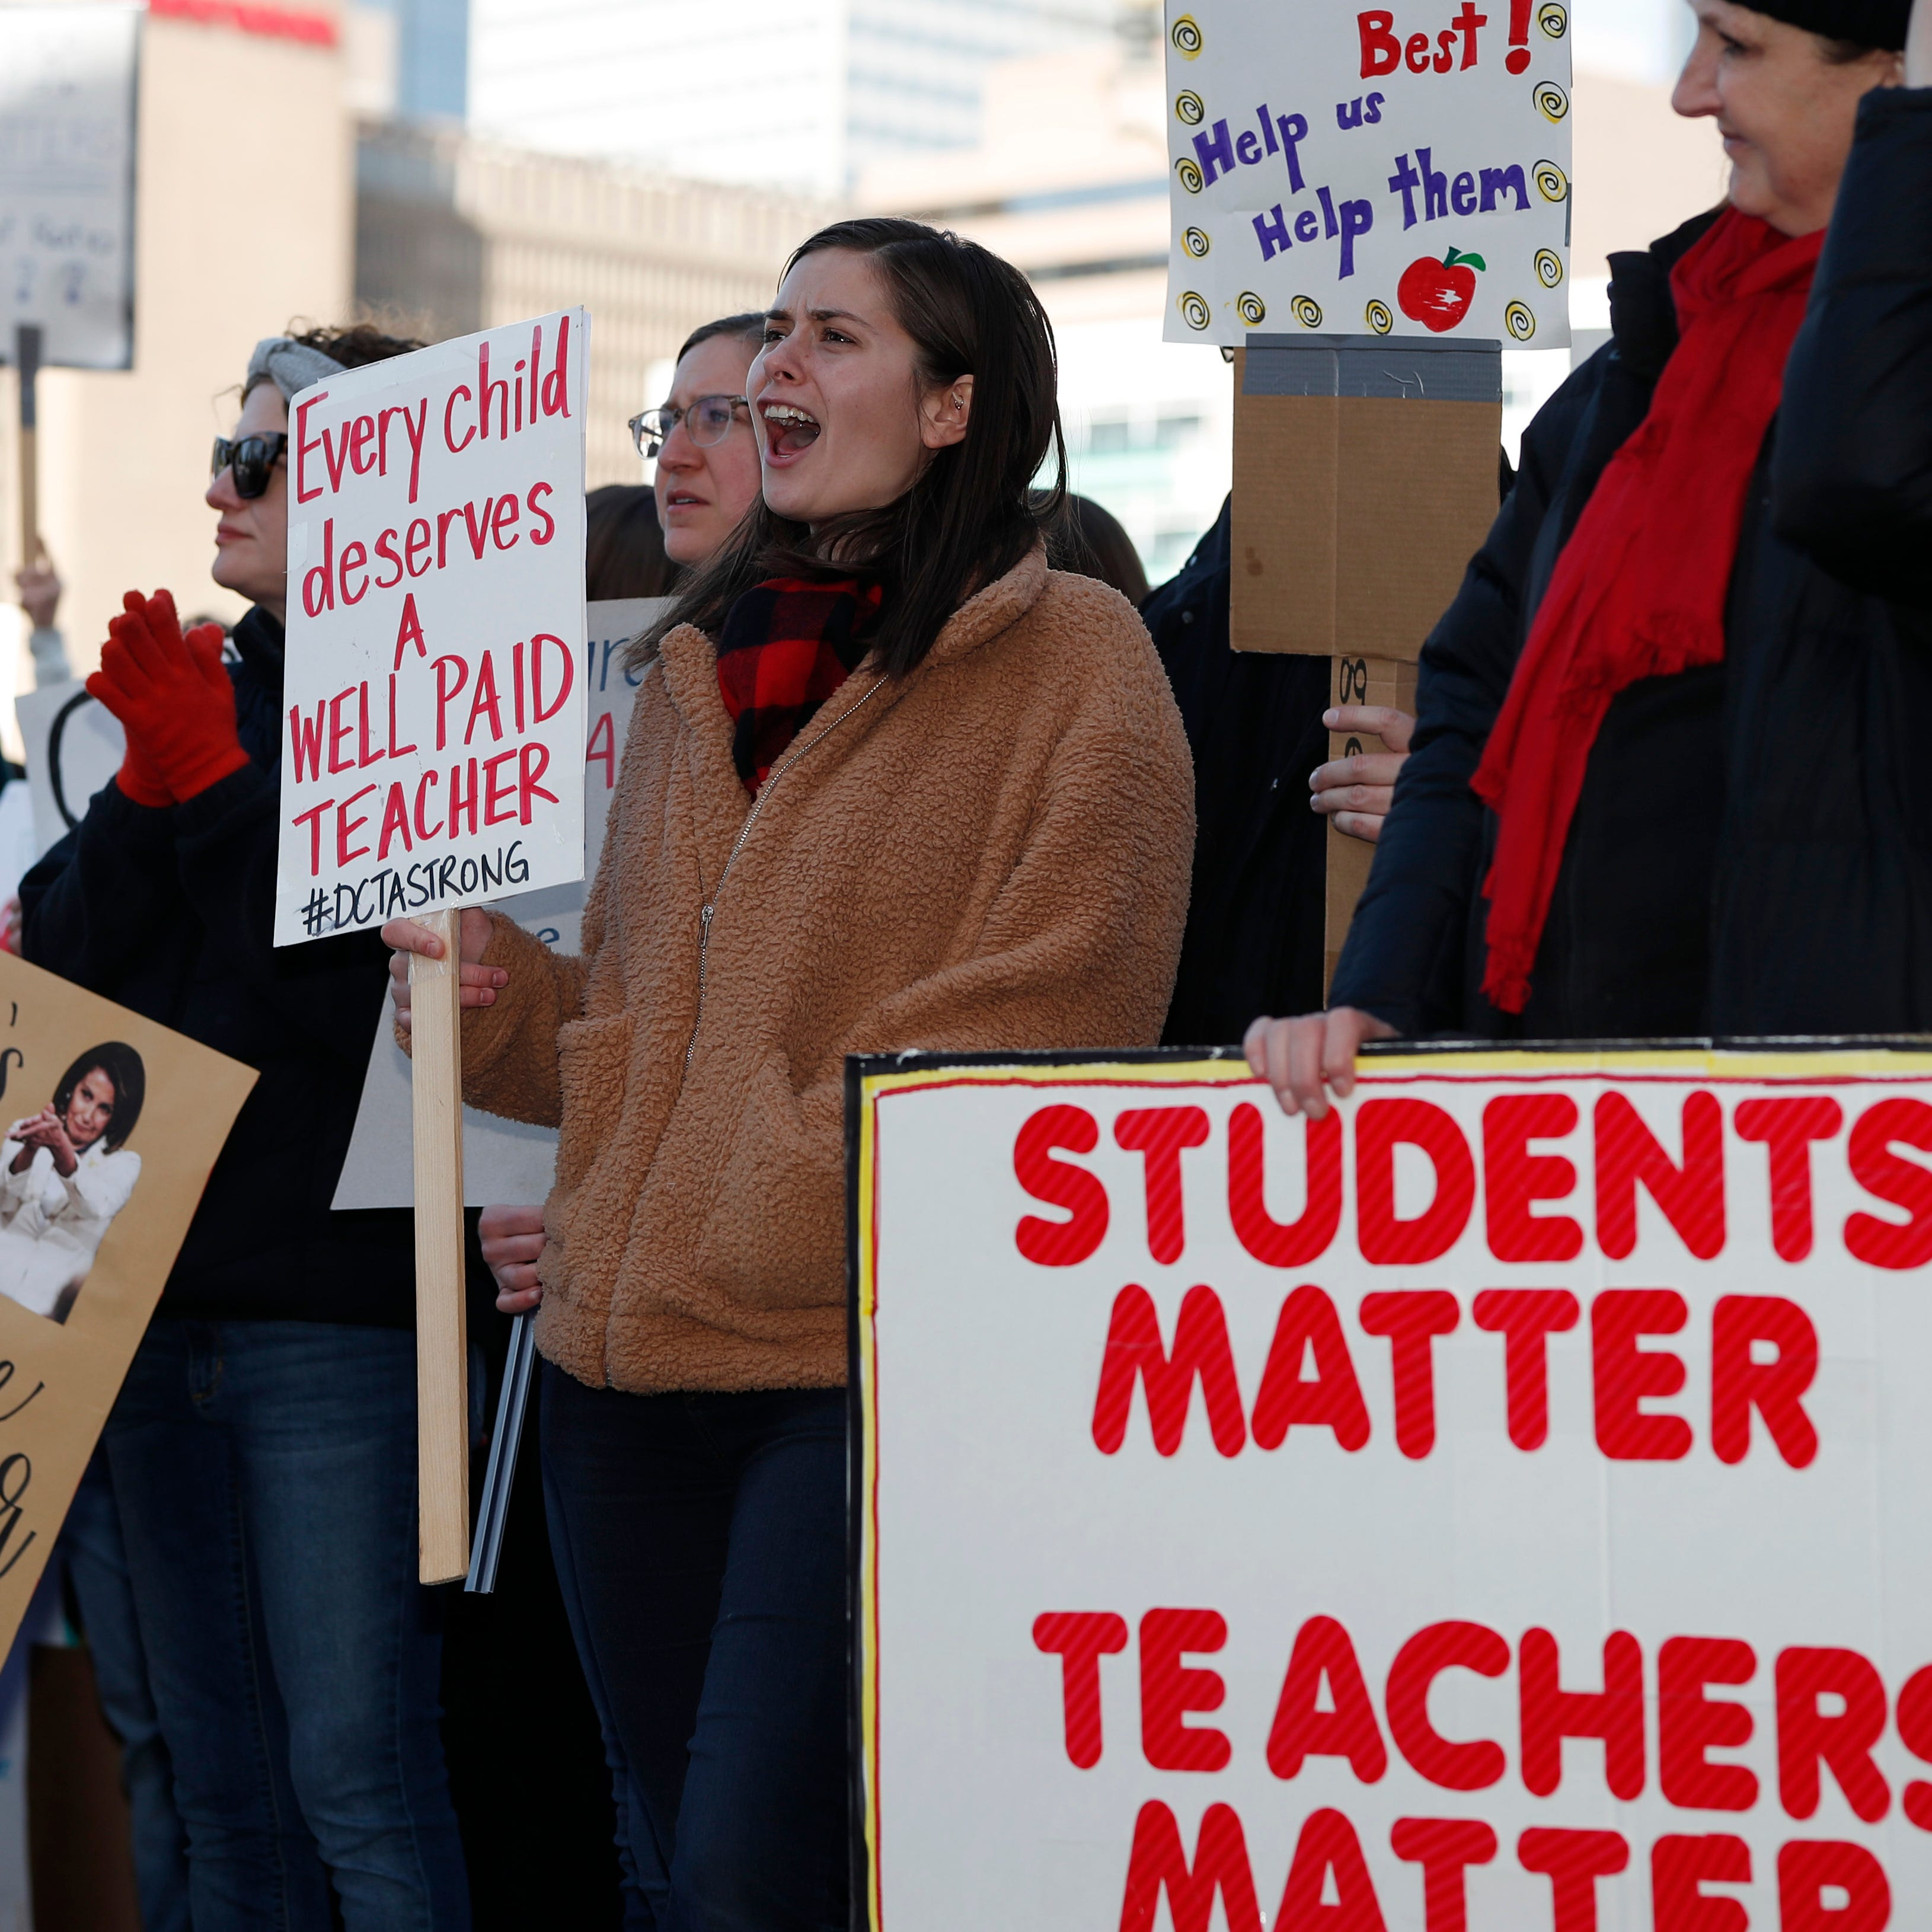 Iowa's teachers will walk to Minnesota, walk to retirement or walk to the picket line